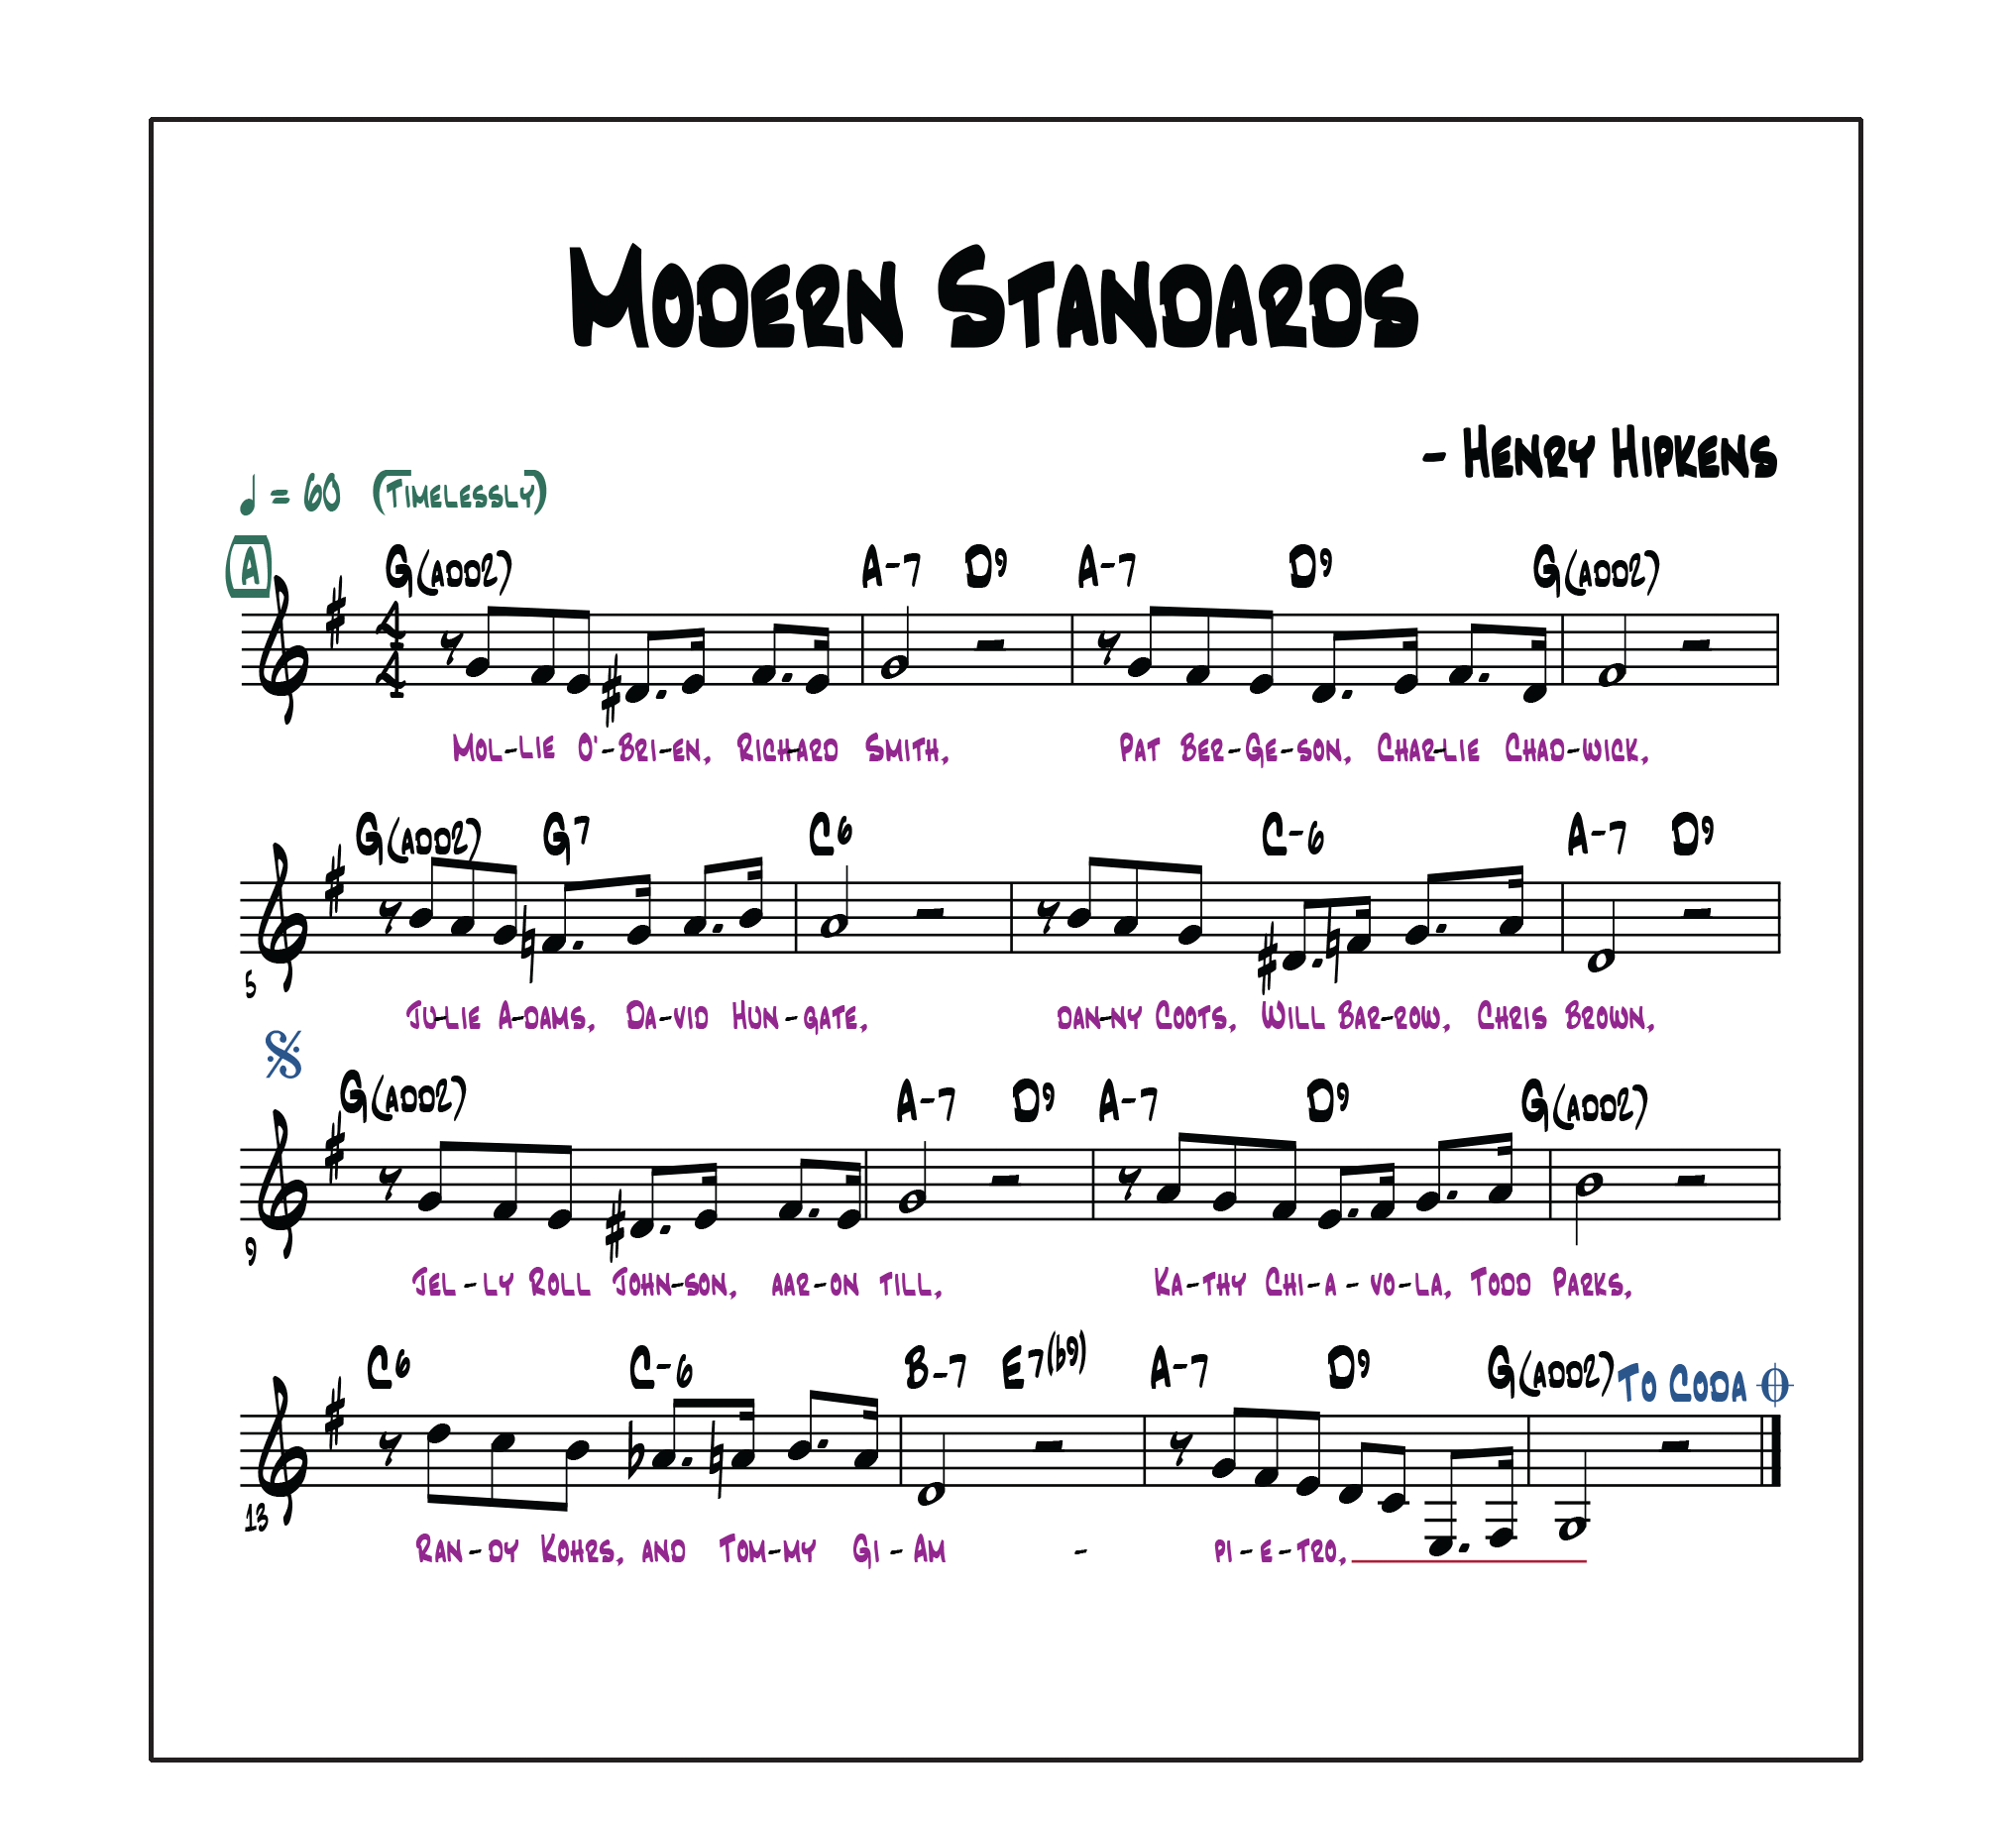 CLICK FOR AUDIO, CHARTS AND LYRICS FROM MODERN STANDARDS